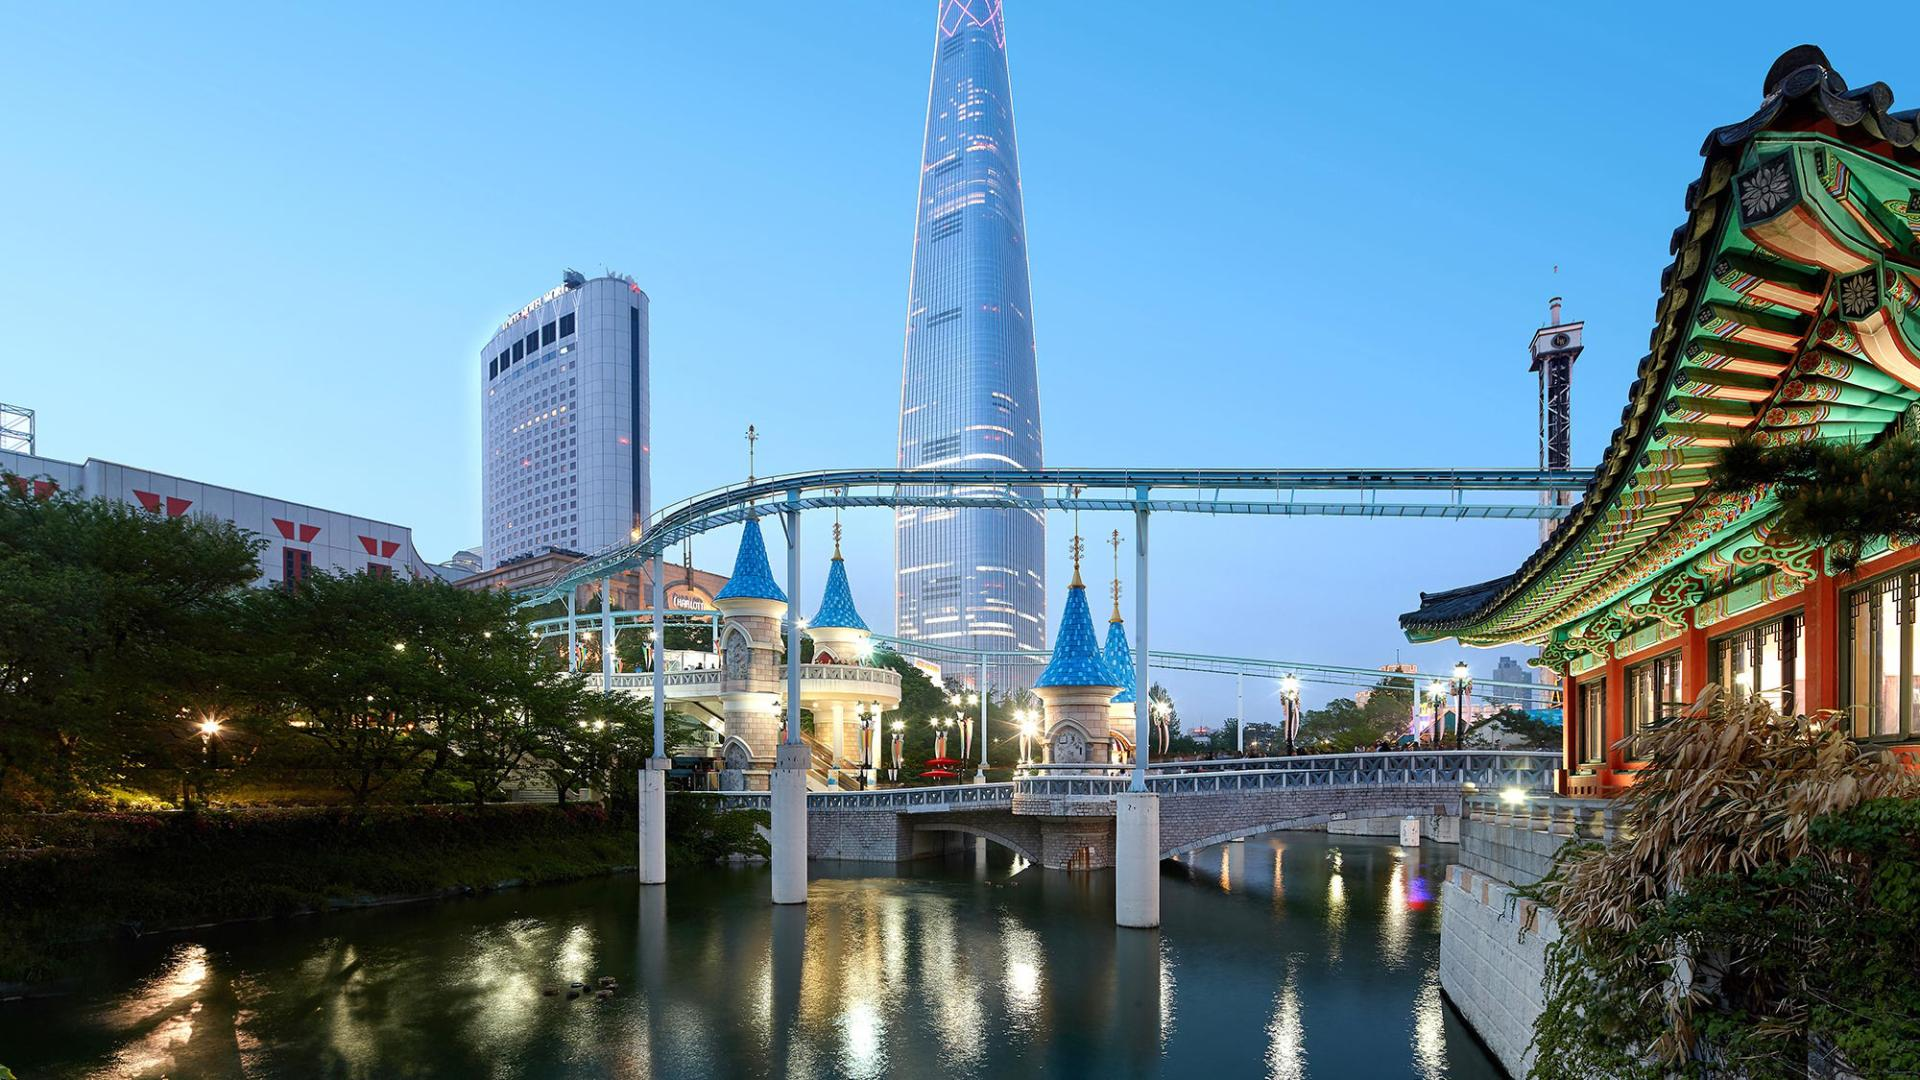 LOTTE HOTEL WORLD, main